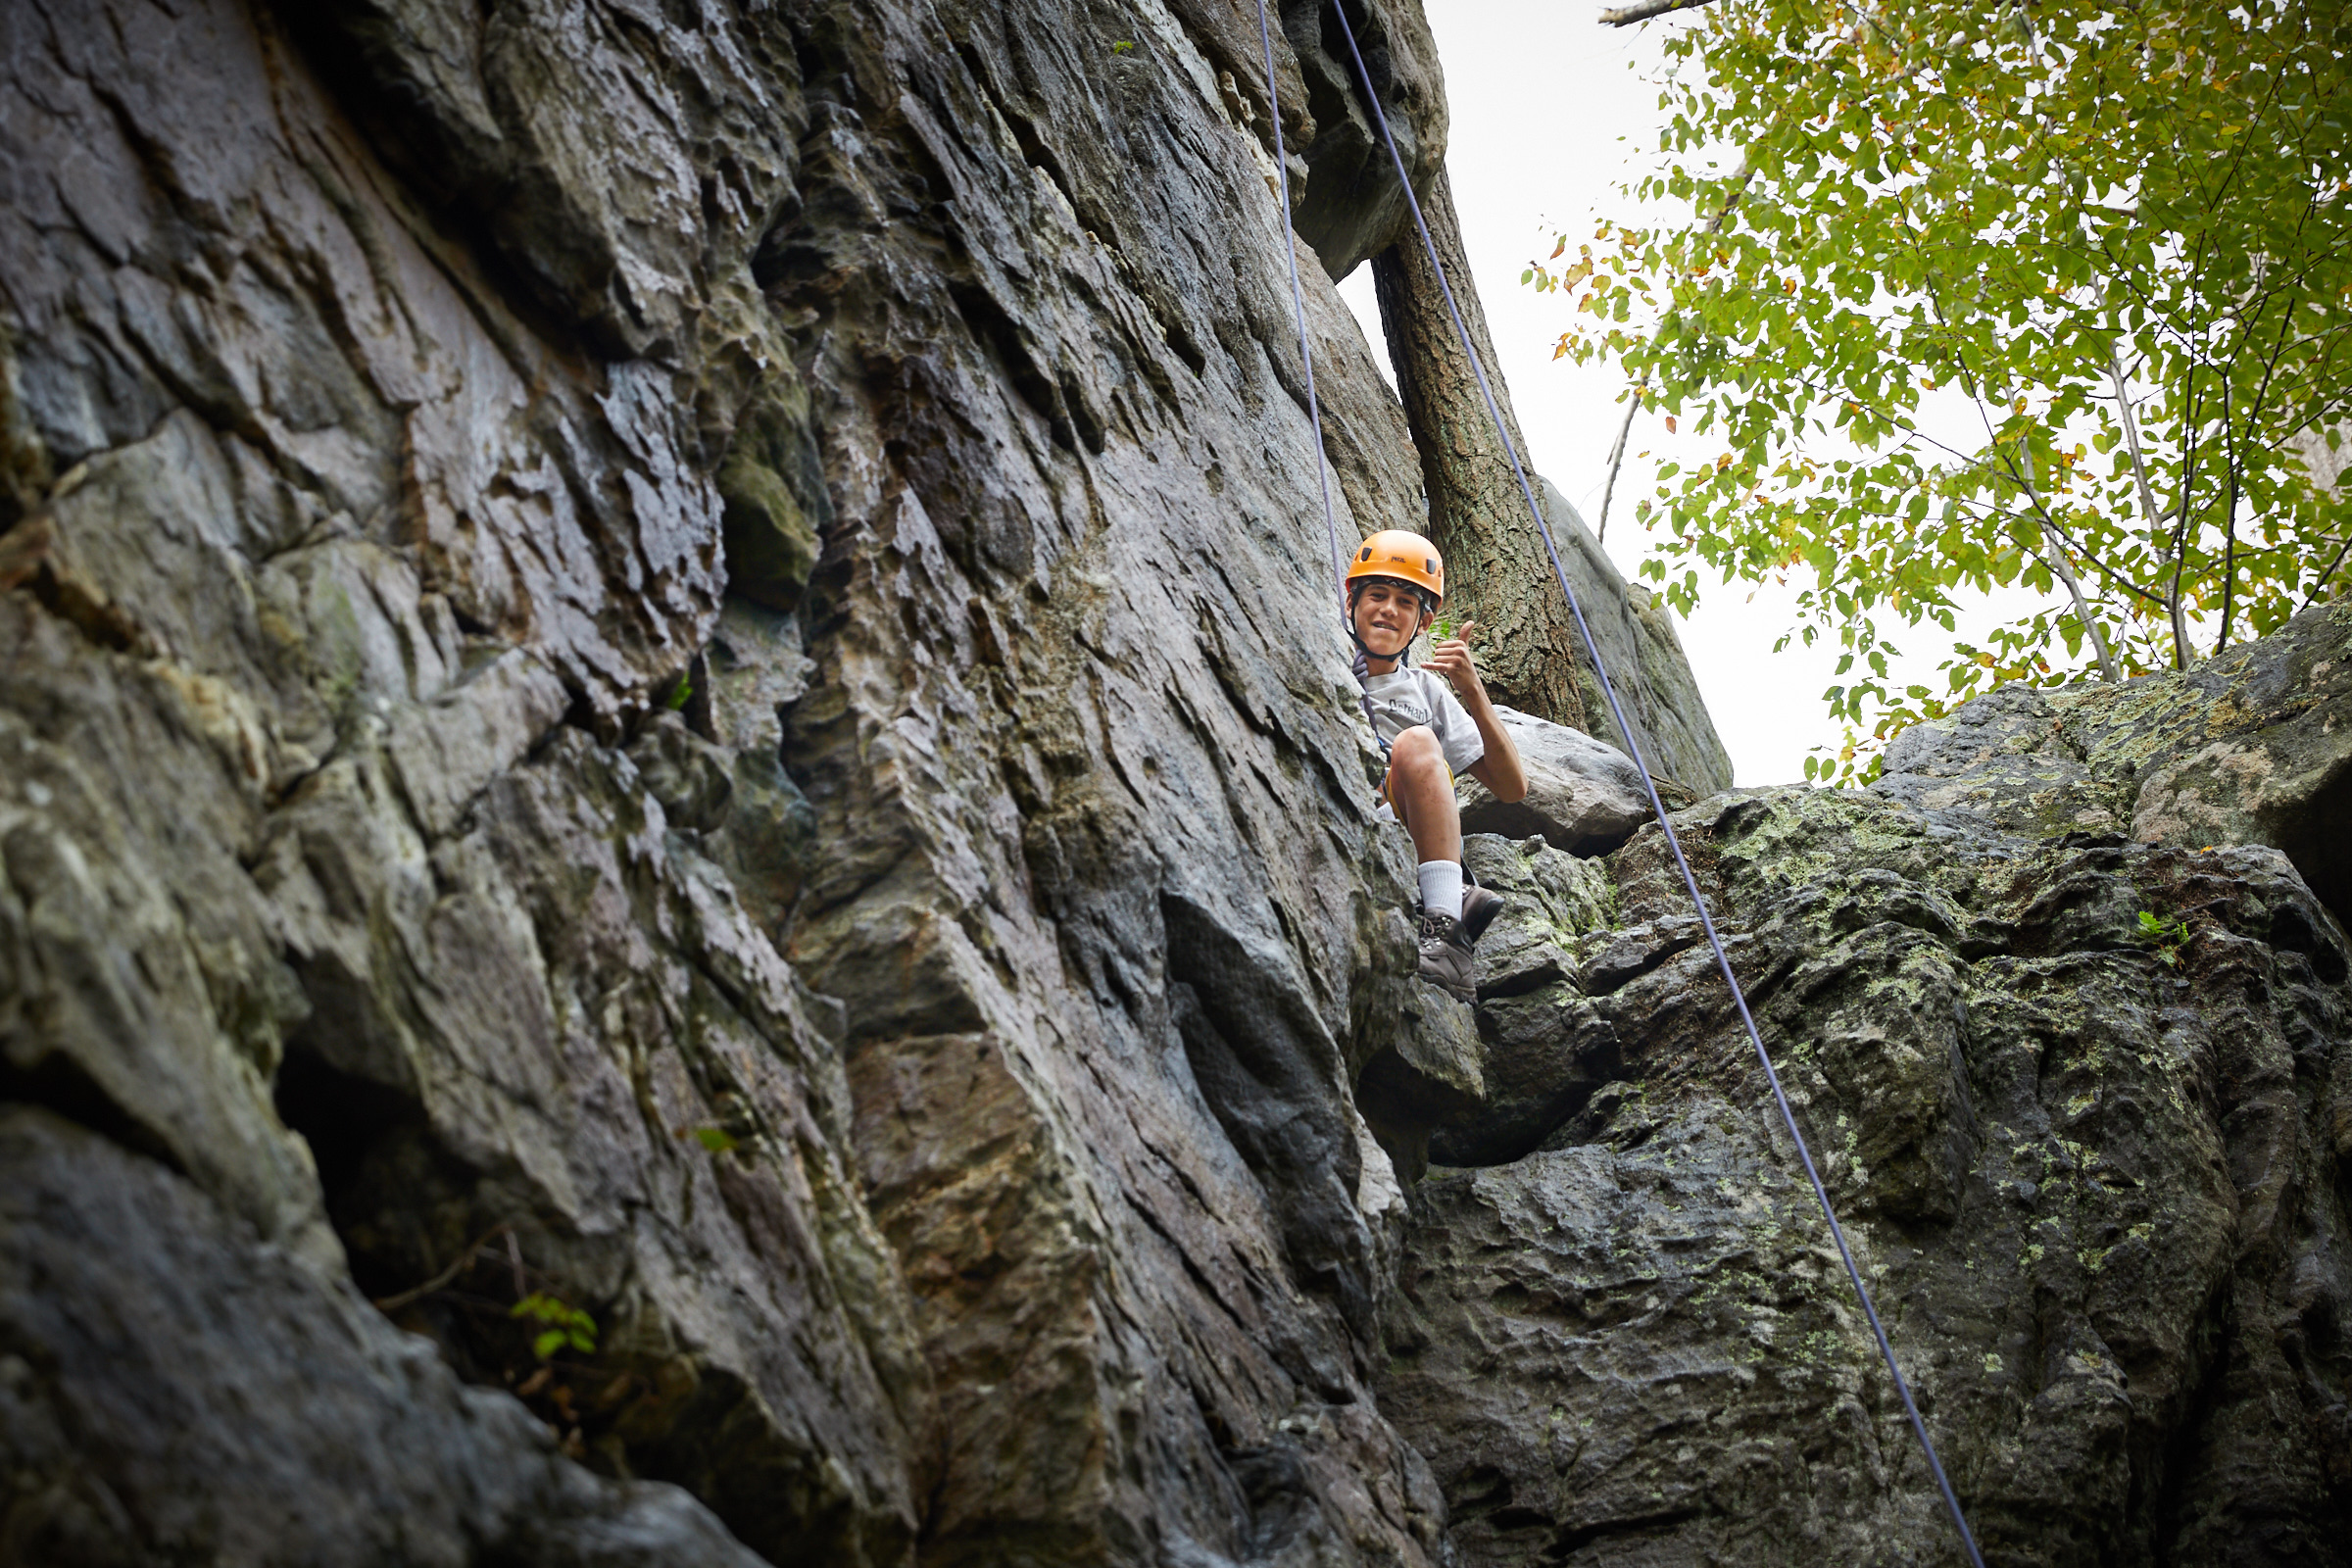 St. Paul School at Outward Bound course at Shaffer Rock, Michaux State Park, PA. [image © Matthew Rakola]